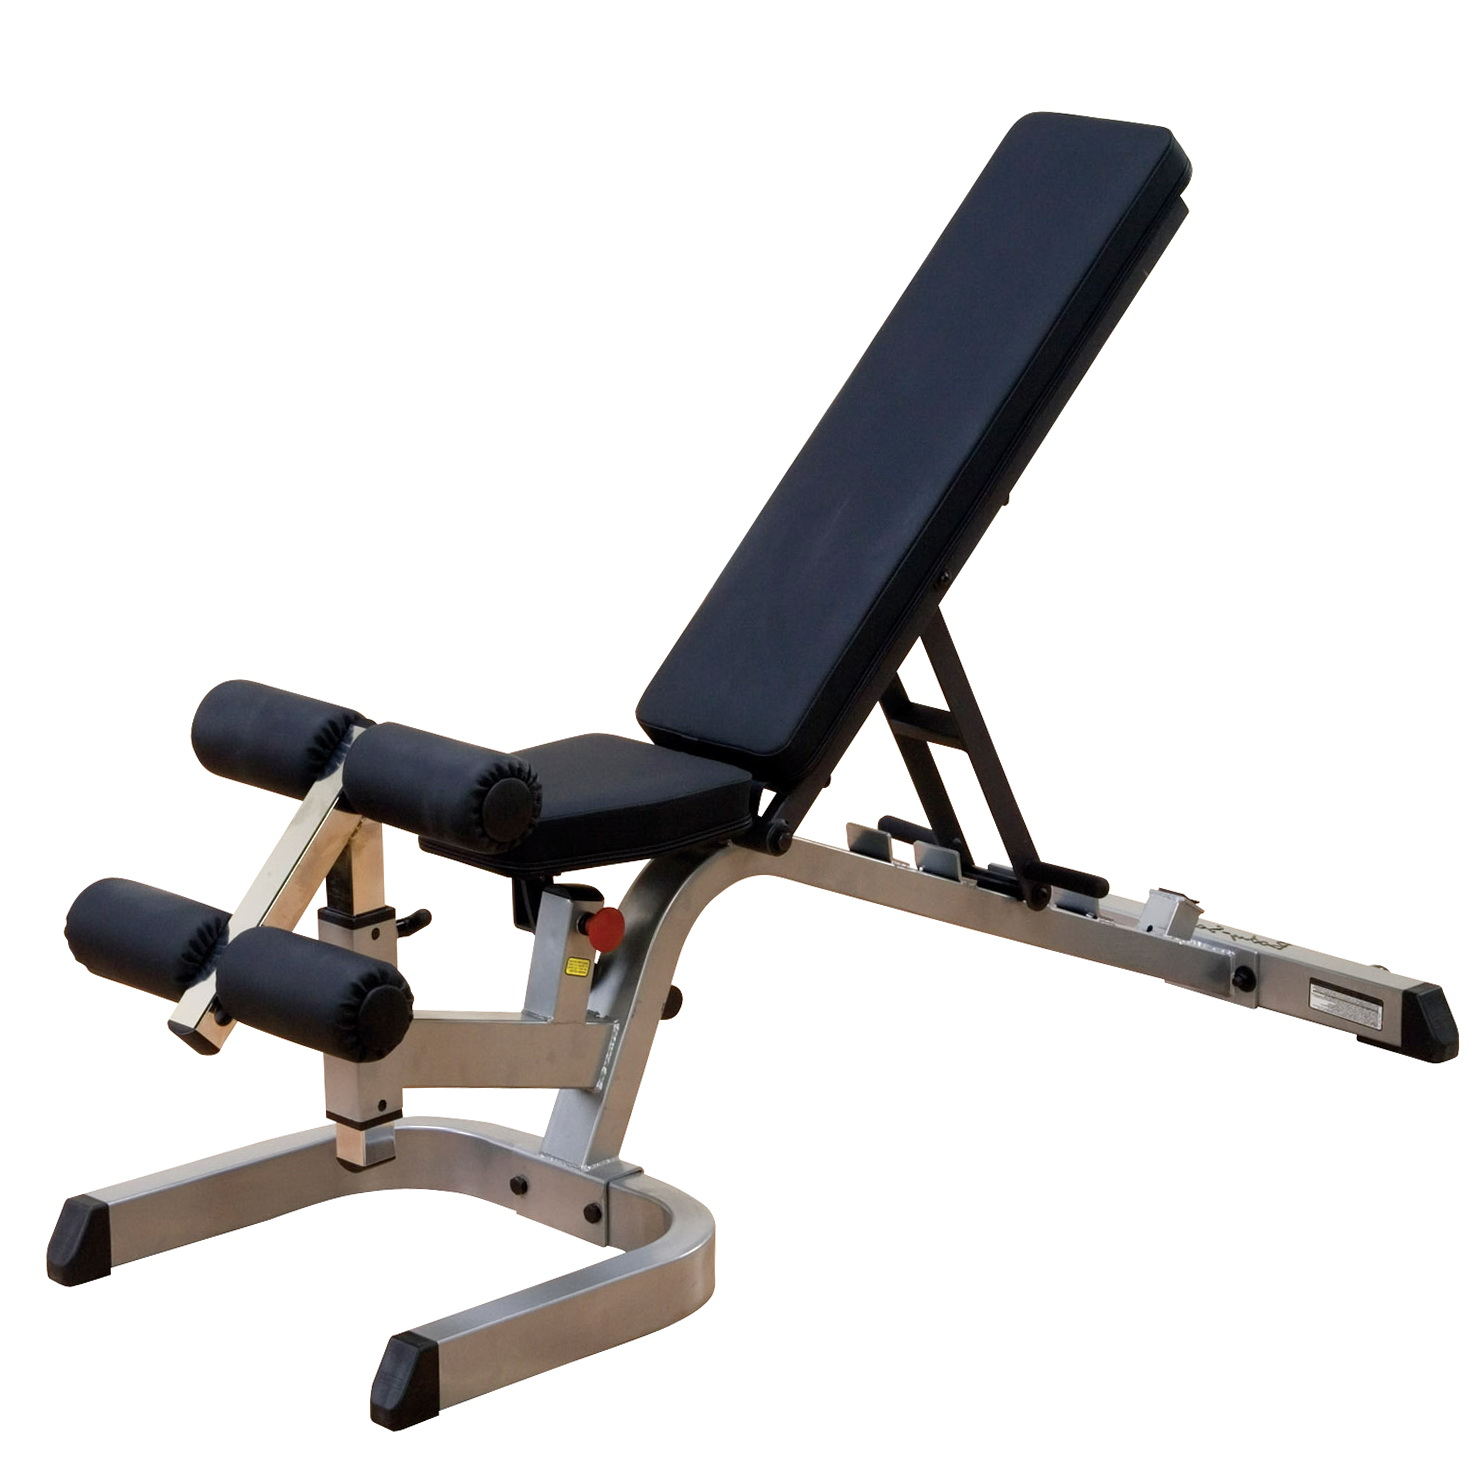 Decline Flat Incline Bench 28 Images Multisports Sdfib Decline Flat Incline Bench Comes Mgt